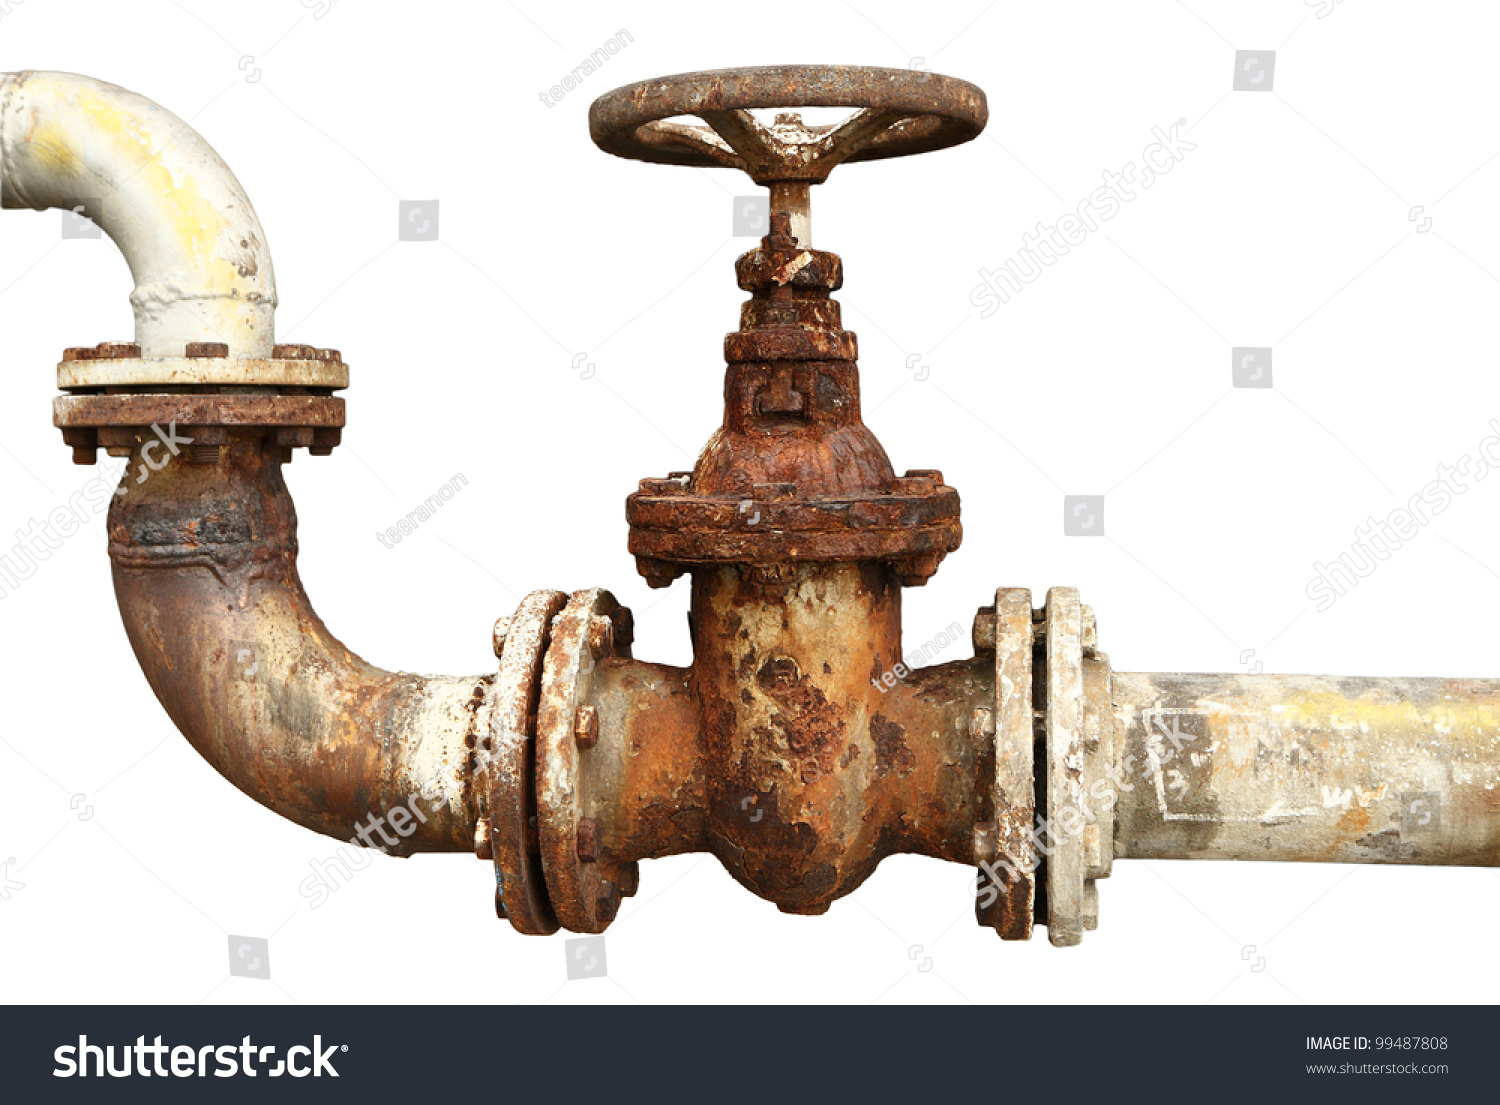 Old rusty industrial tap water pipe stock photo 99487808 for What are old plumbing pipes made of